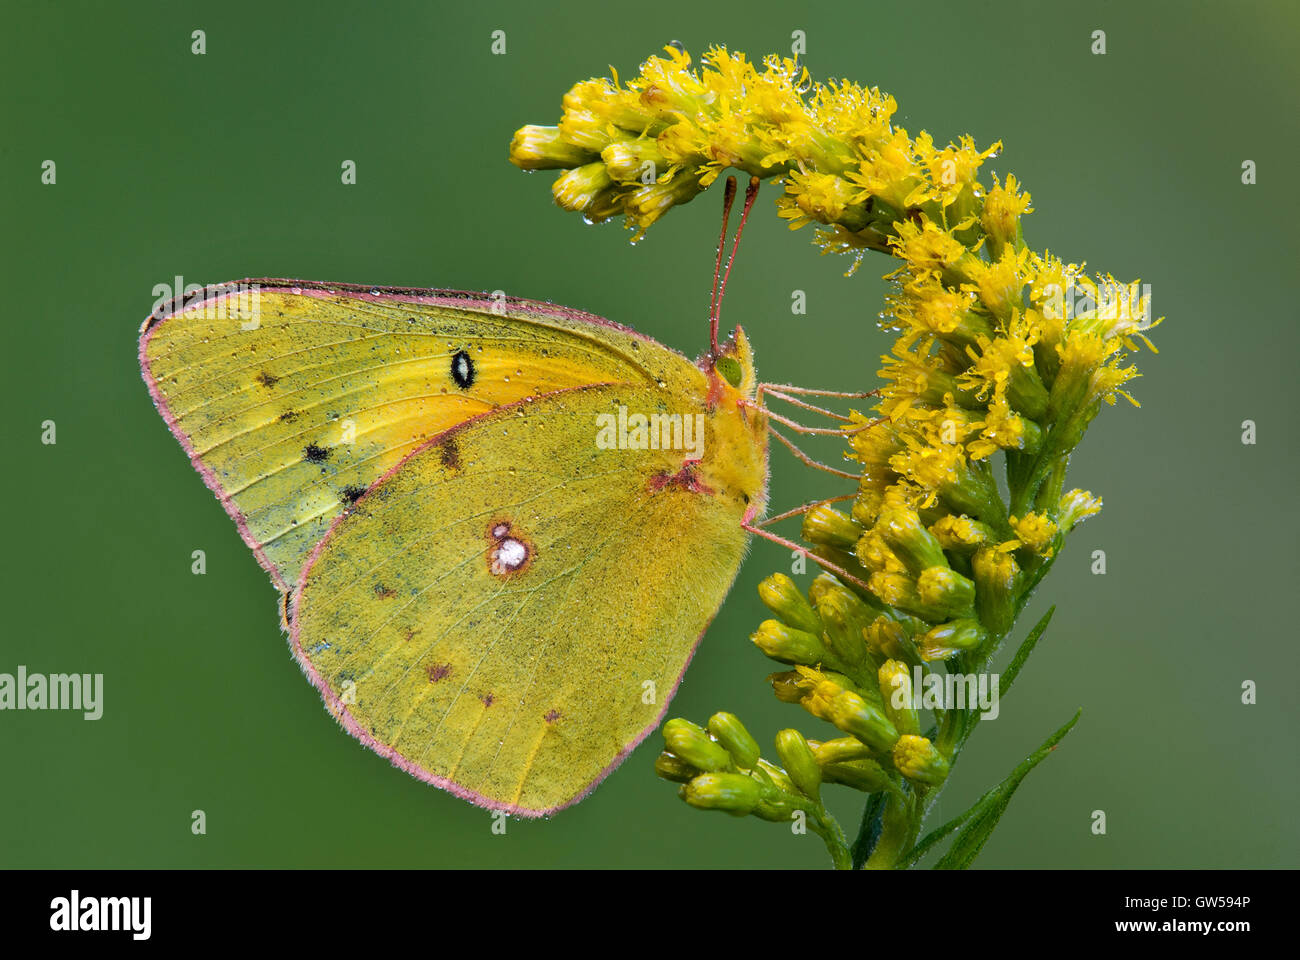 Clouded Sulphur Butterfly Colias philodice feeding on Goldenrod (Solidago species) flowers, Michigan USA Stock Photo